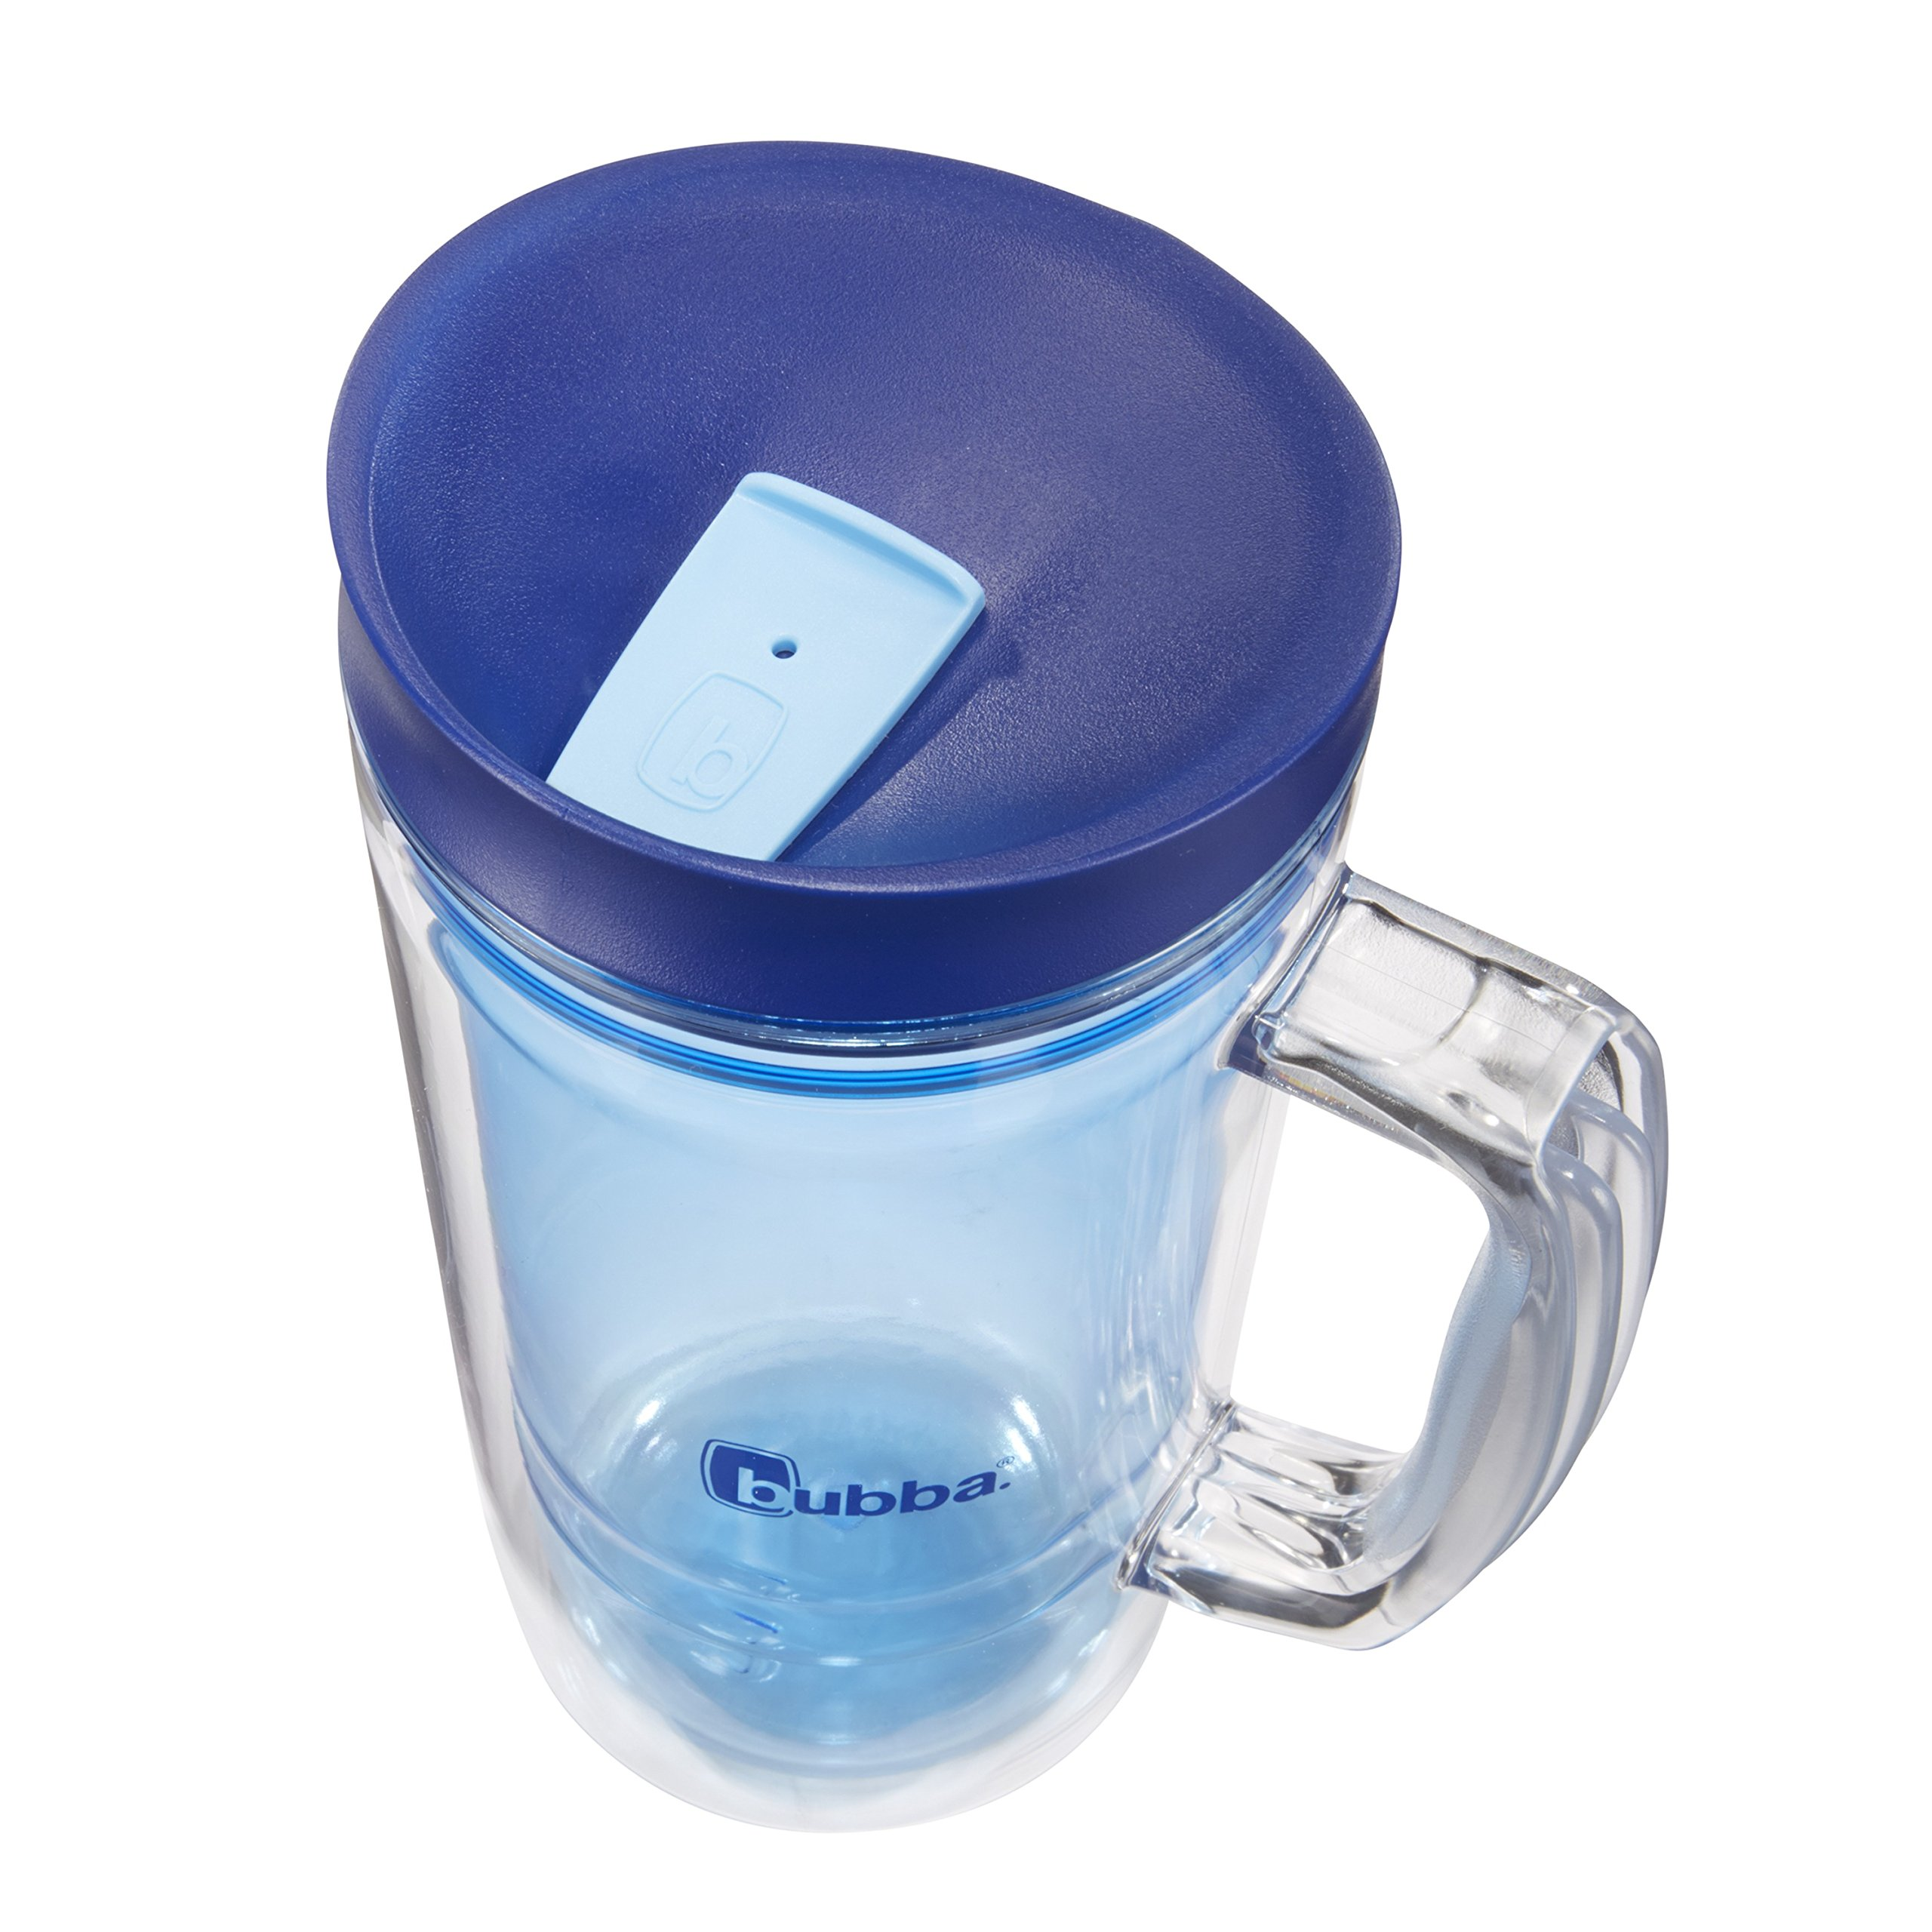 Bubba Envy Double Wall Insulated Straw Tumbler with Handle, 32 oz, Blue by BUBBA BRANDS (Image #6)